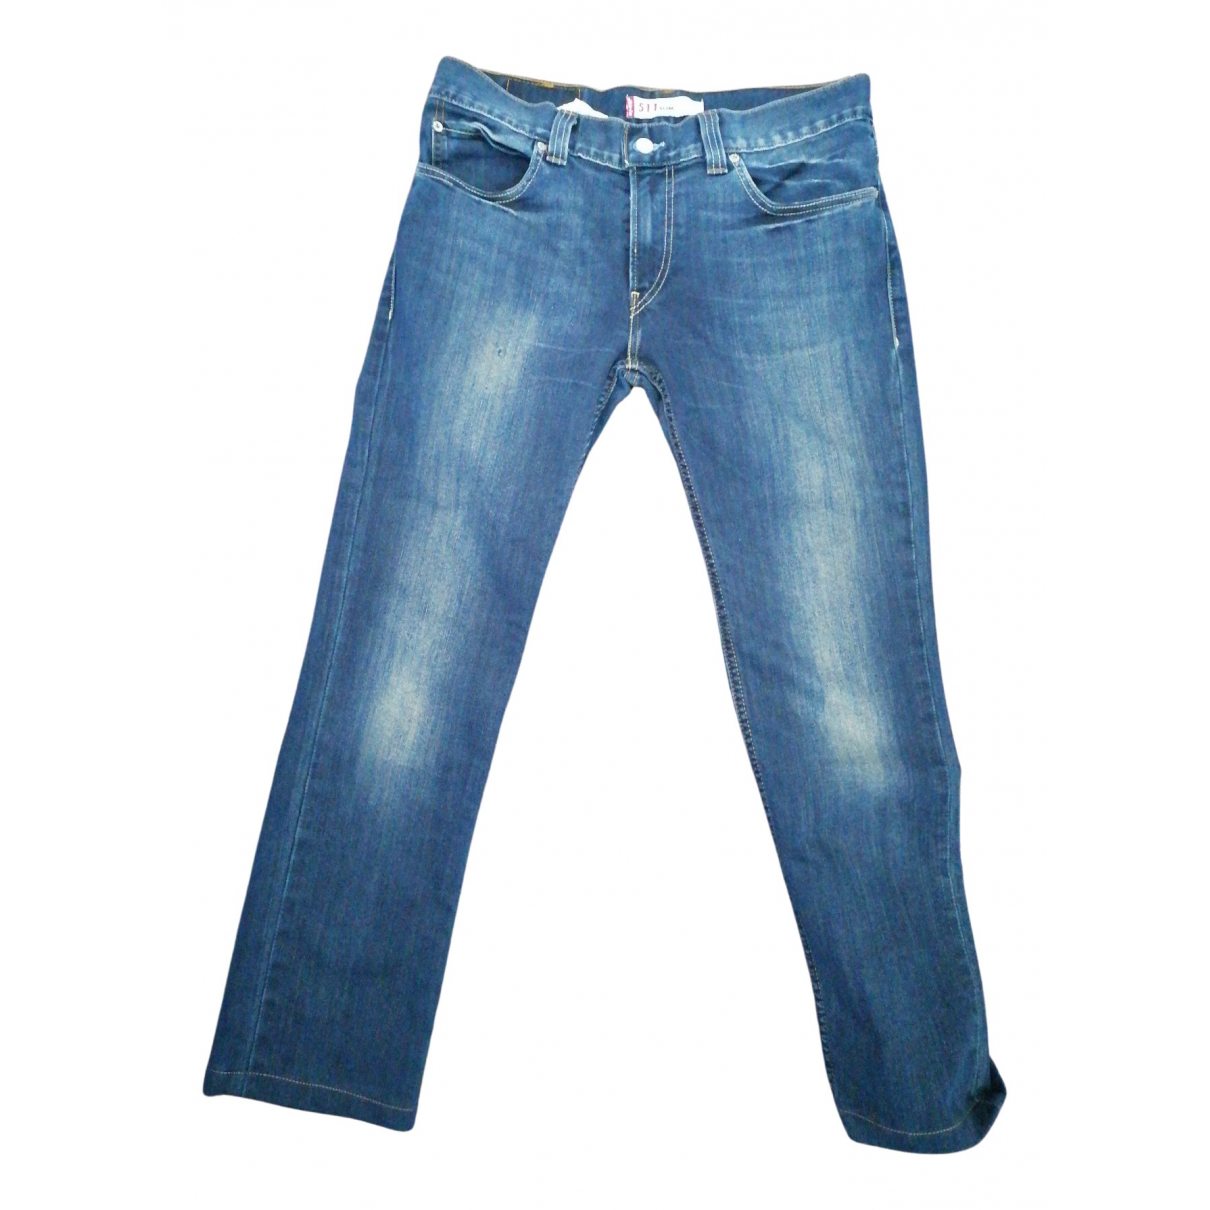 Levi's 511 Blue Cotton Jeans for Men 34 US